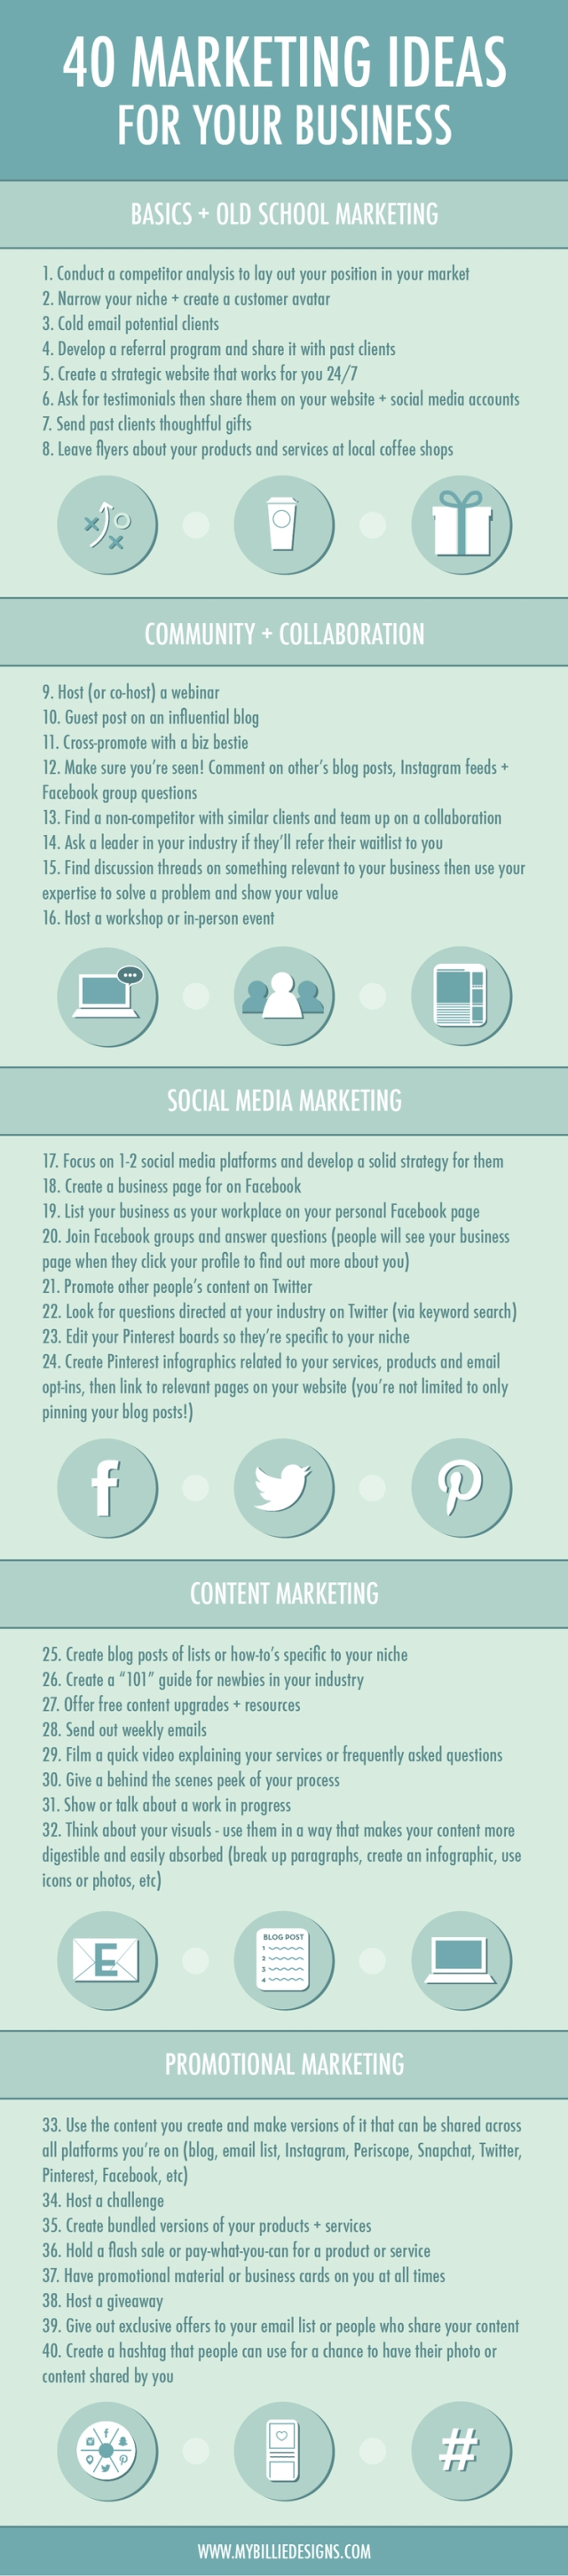 40 Marketing Ideas For Your Small Business [infographic. Templates In Outlook 2010 Template. Romeo And Juliet Death Scene Template. Teacher Training Personal Statement Examples Template. Sample Resume Research Assistant Template. Time Management Templates Excel Template. Sample Of Curriculum Vitae Yang Menarik. Star Template Full Page Template. Wording For Gift Vouchers Template 554801